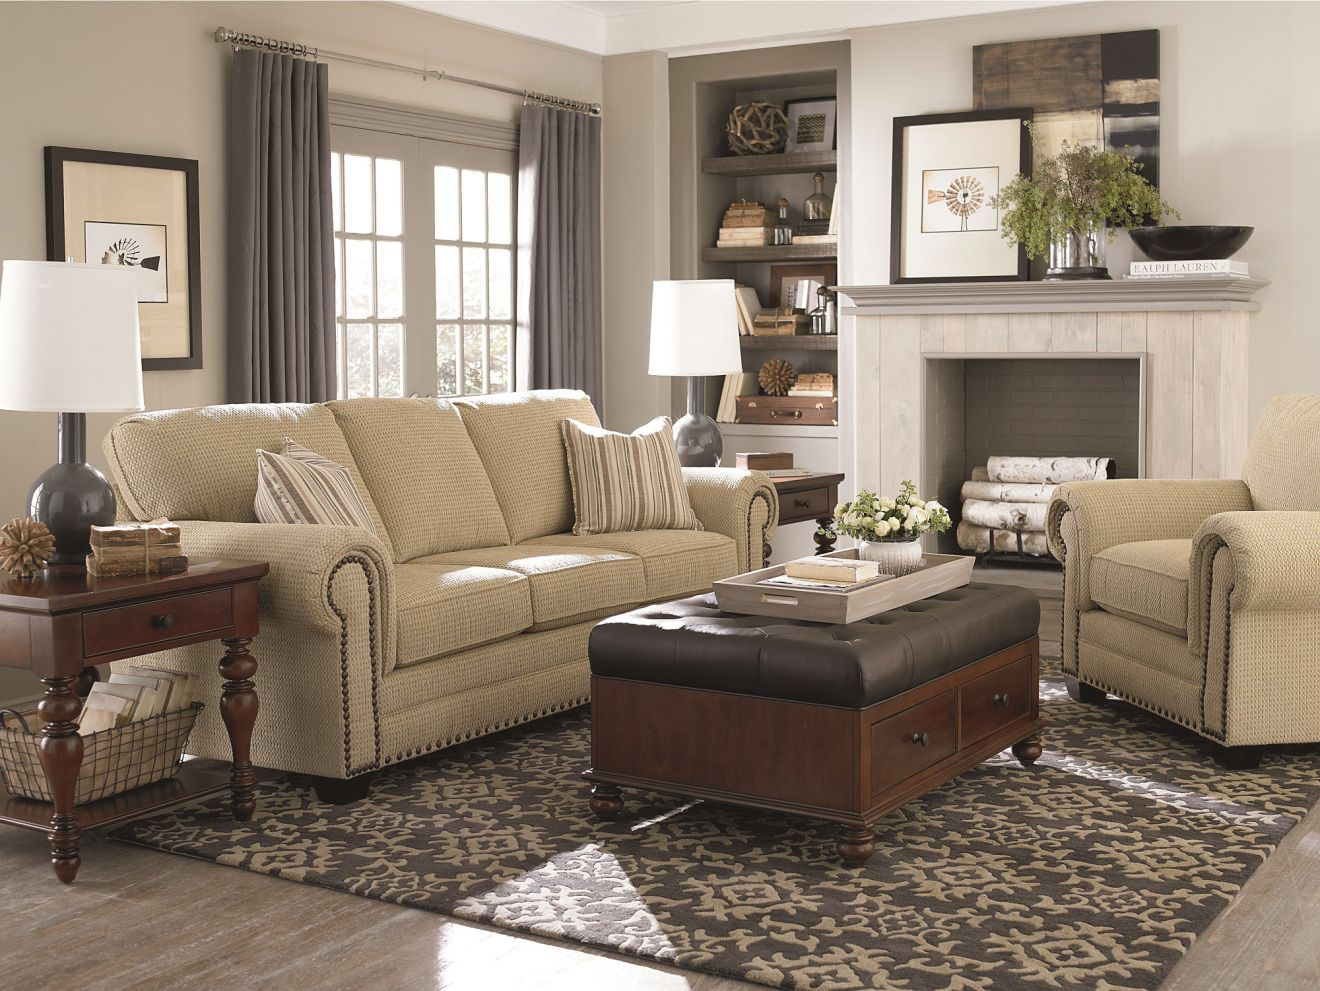 sofas bassett cameron for greenwich furniture barn roll affordable carlisle sectionals cupboard sofa reviews sectional design best pottery your room living center